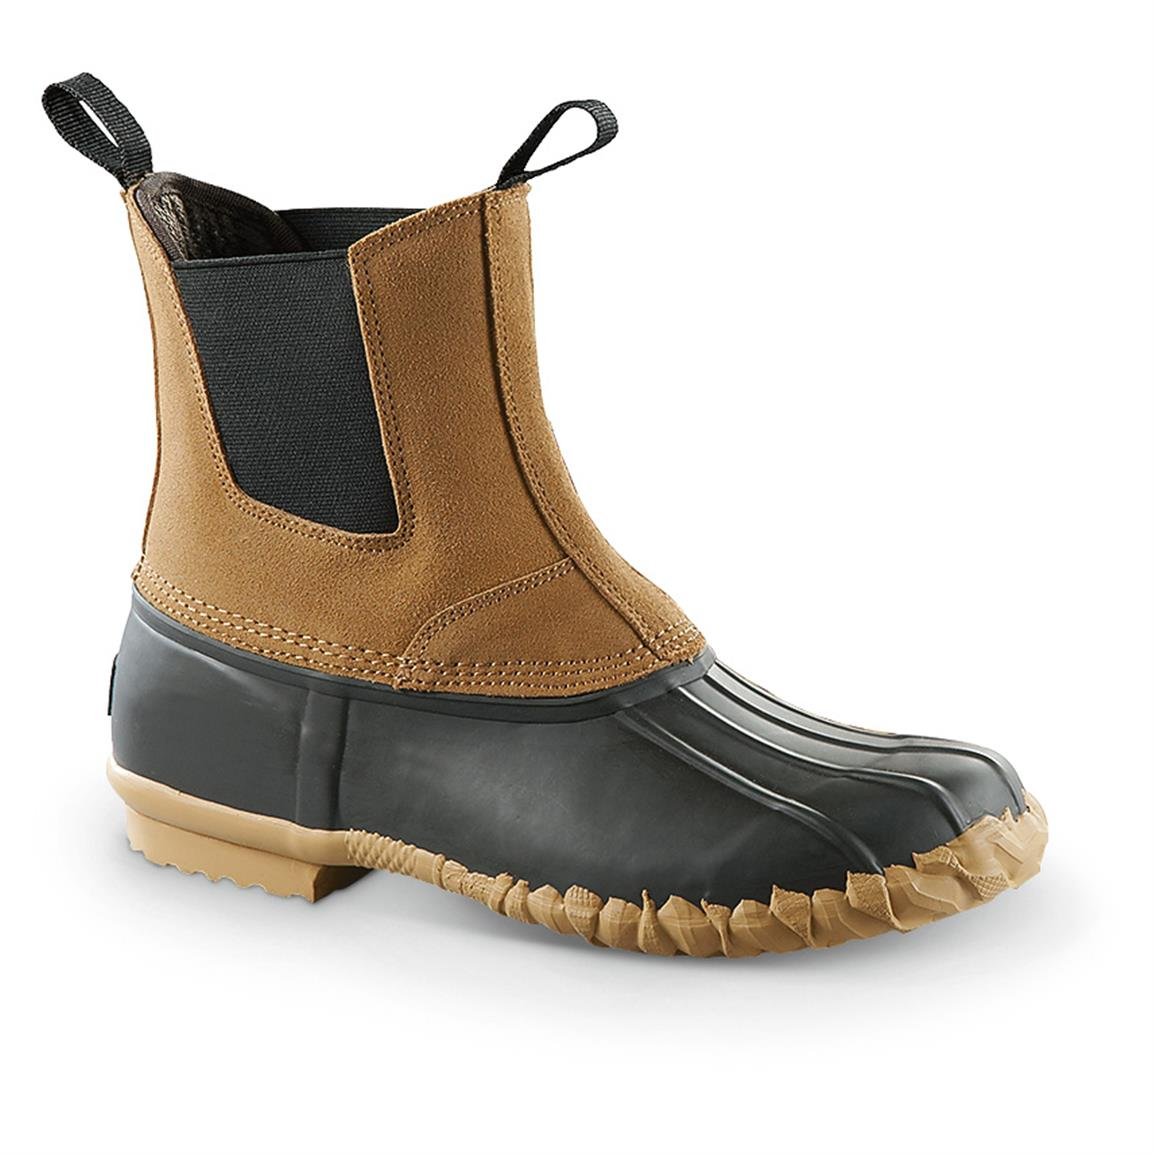 guide gear pull-on insulated duck boots GQGKGMX